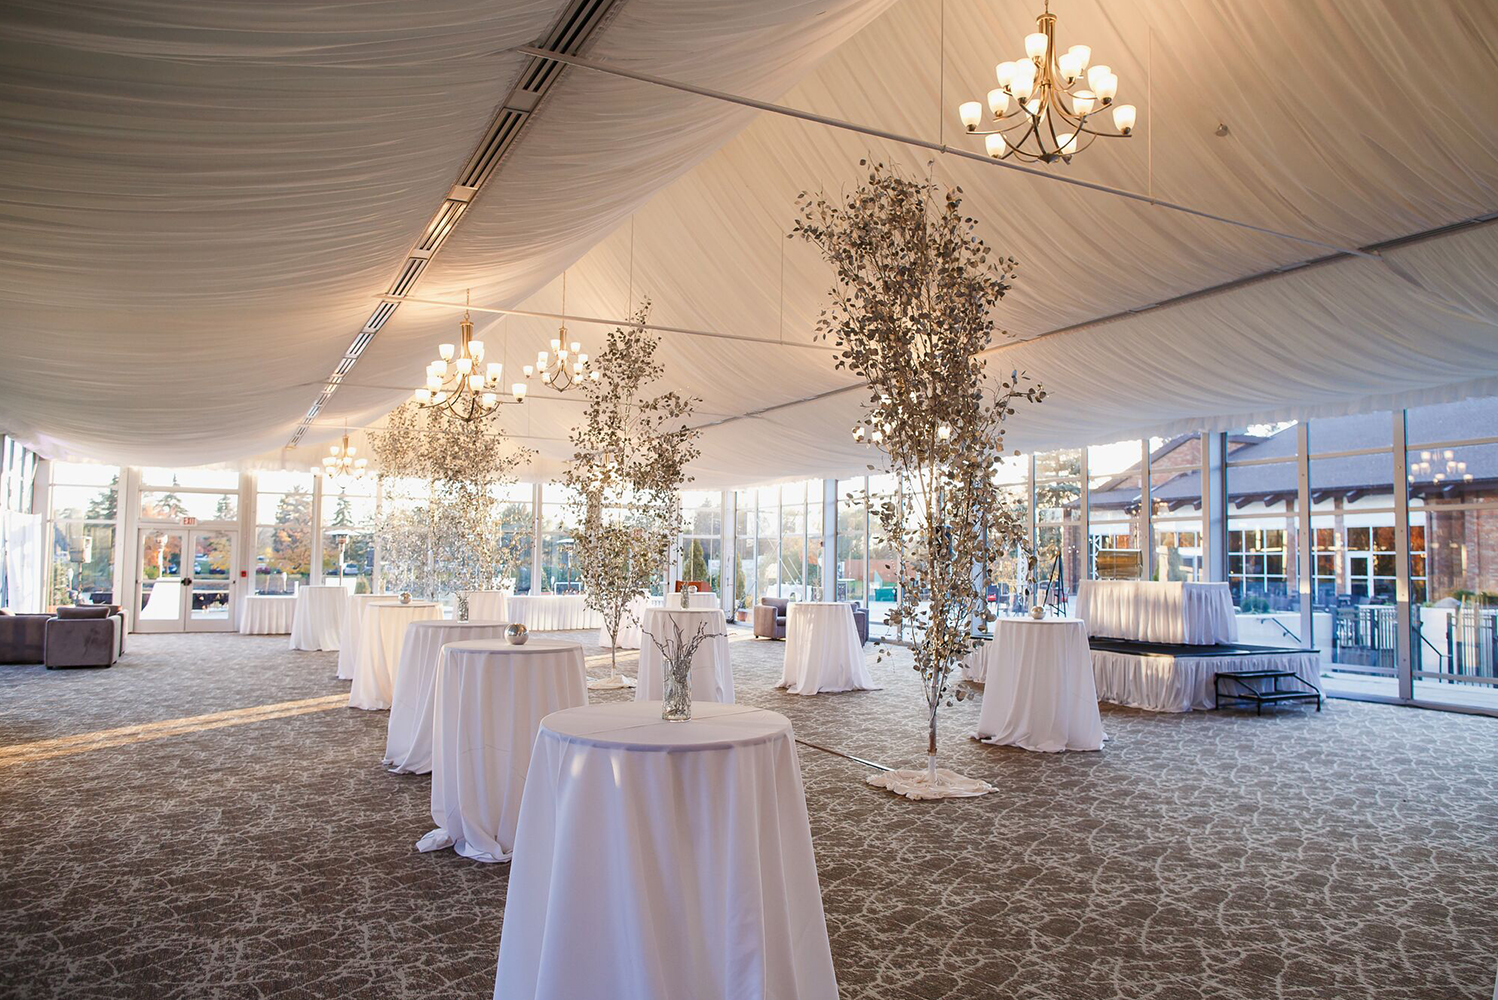 For events, the property now has the new, 5,000 square-foot Lakeside Pavilion, which has views of Lake Lincolnshire.